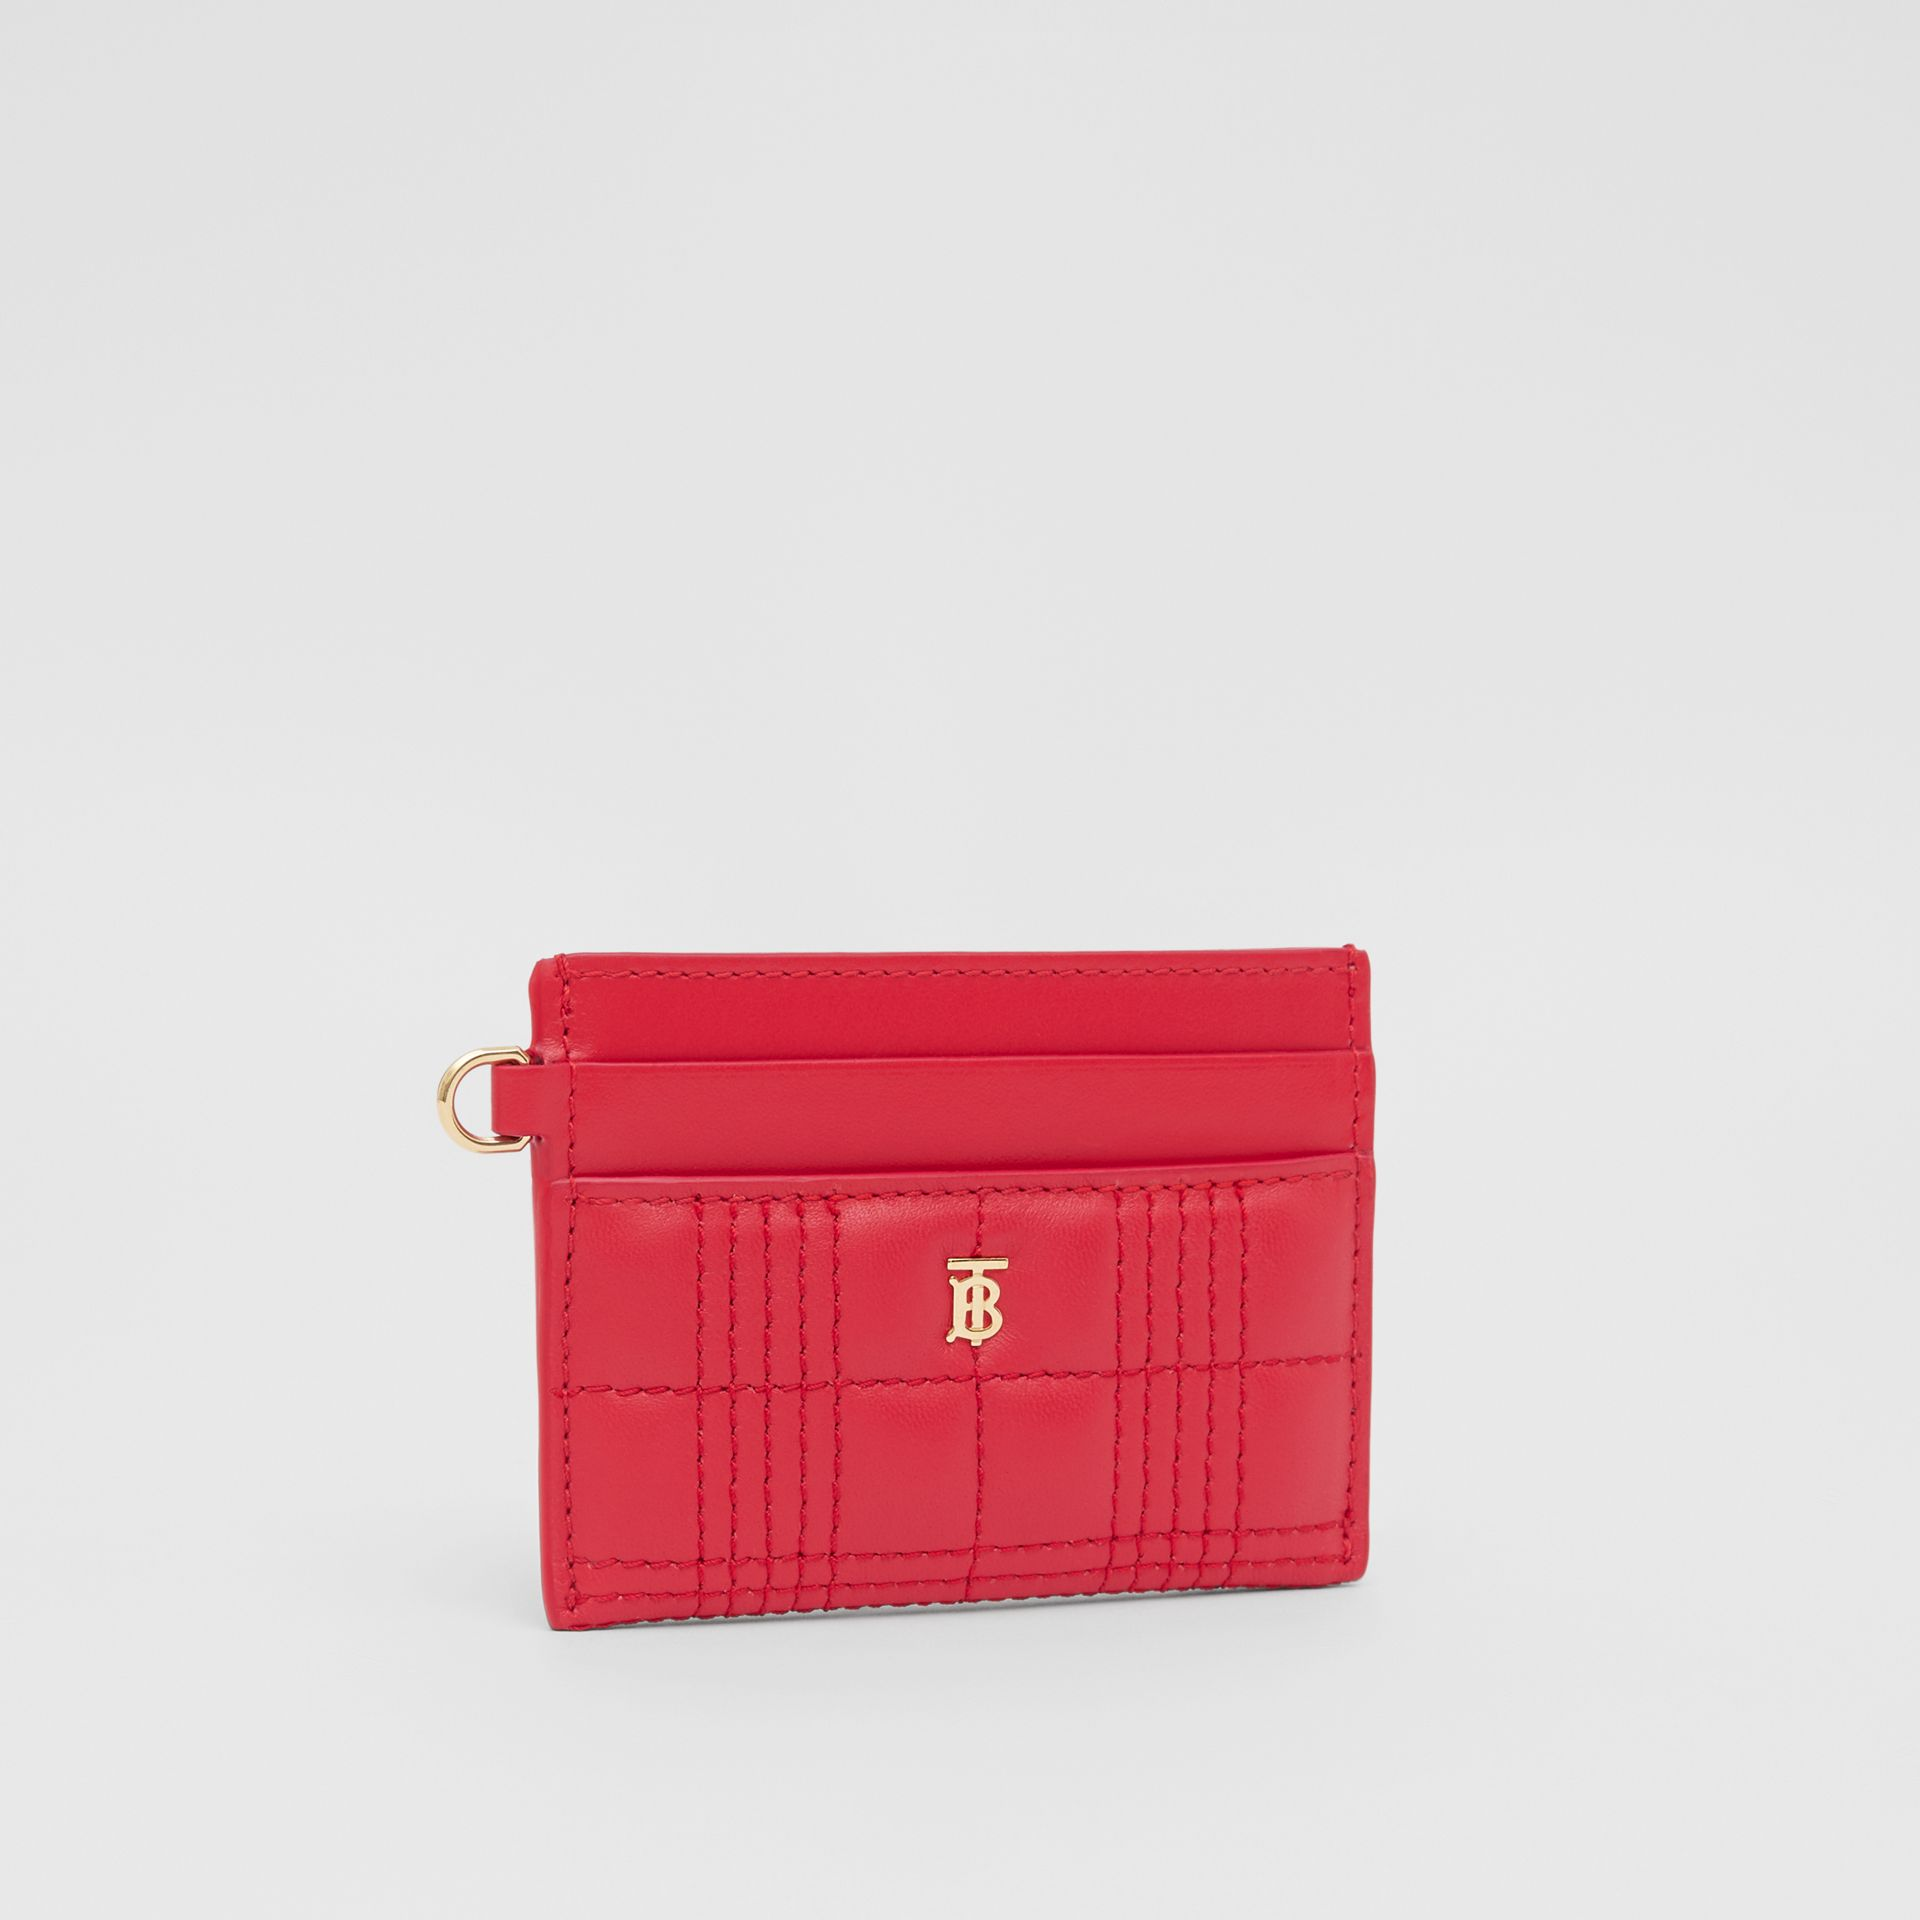 Monogram Motif Quilted Lambskin Card Case in Bright Red - Women | Burberry Hong Kong S.A.R - gallery image 3